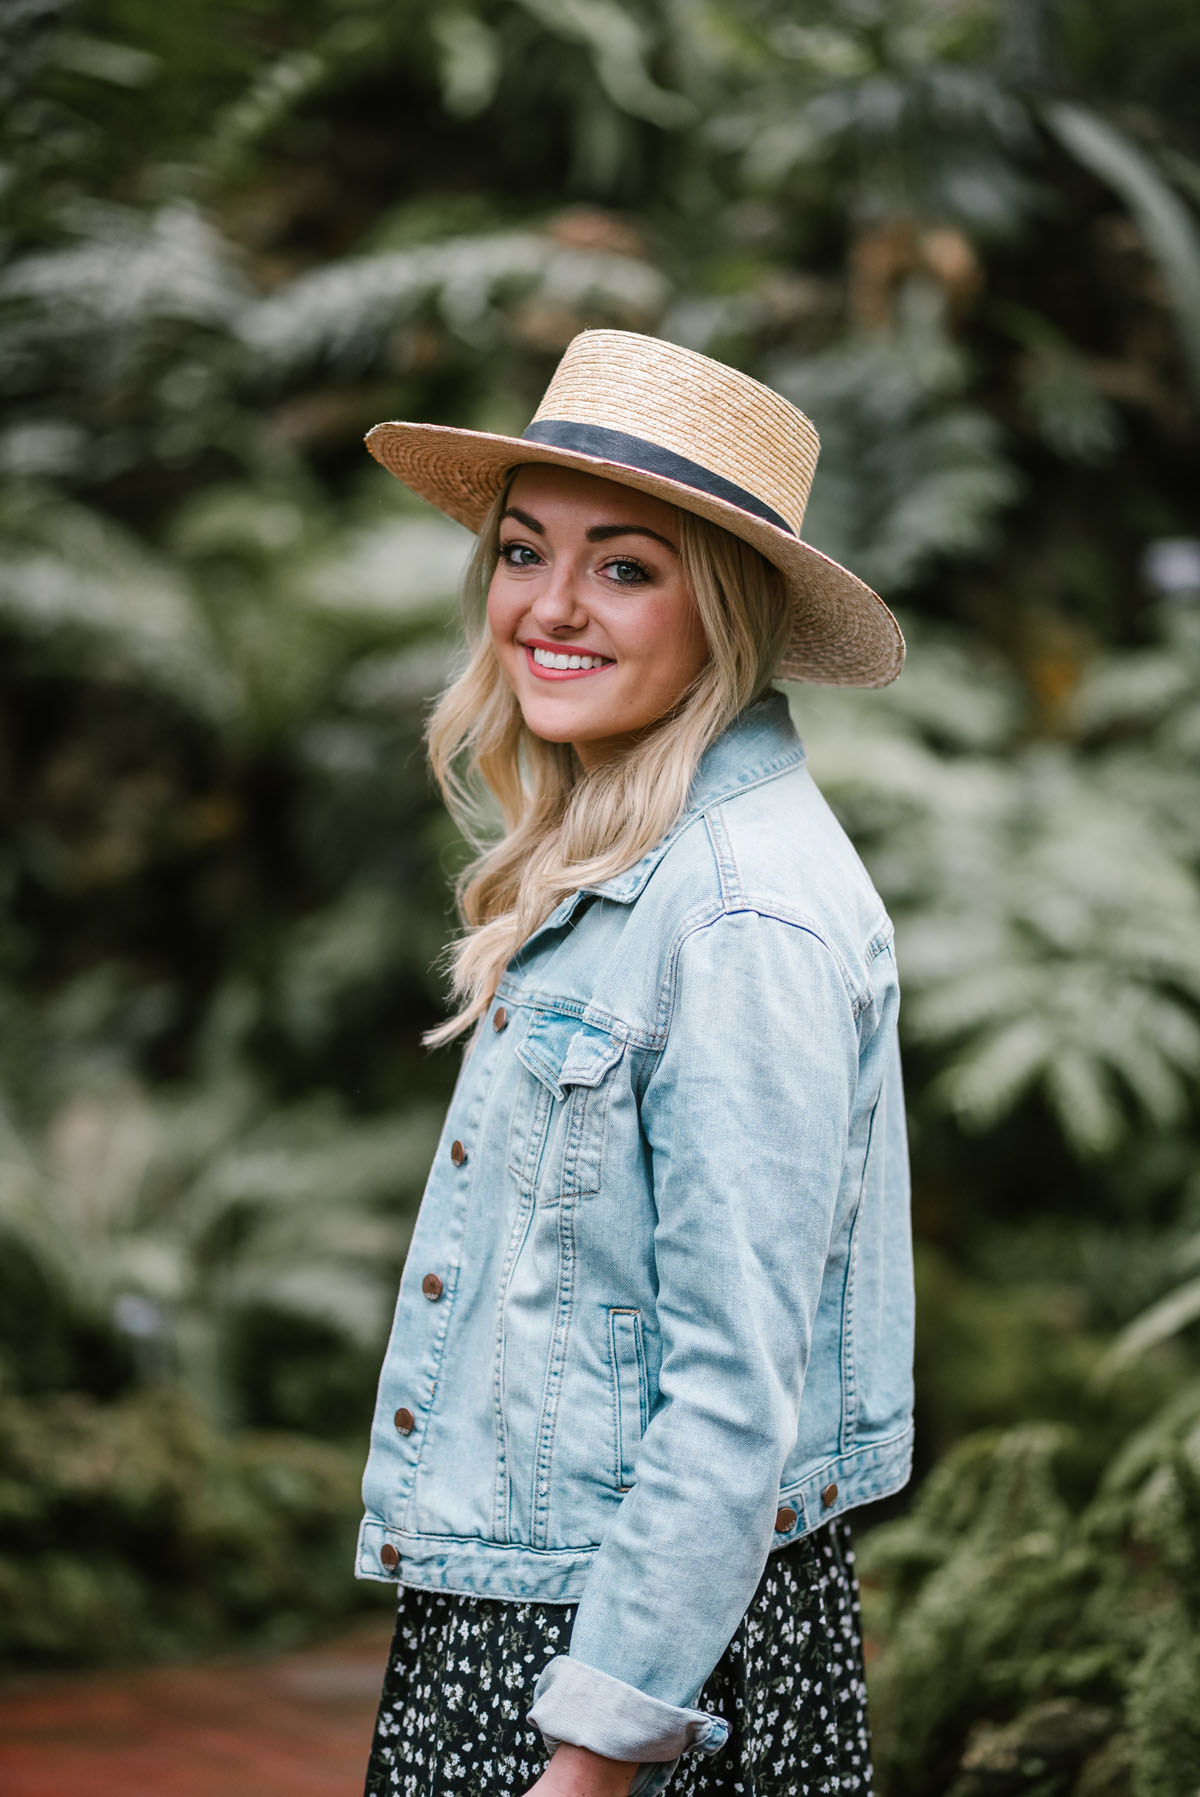 Chicago style blogger Bows & Sequins wearing a Janessa Leone hat with a denim jacket.